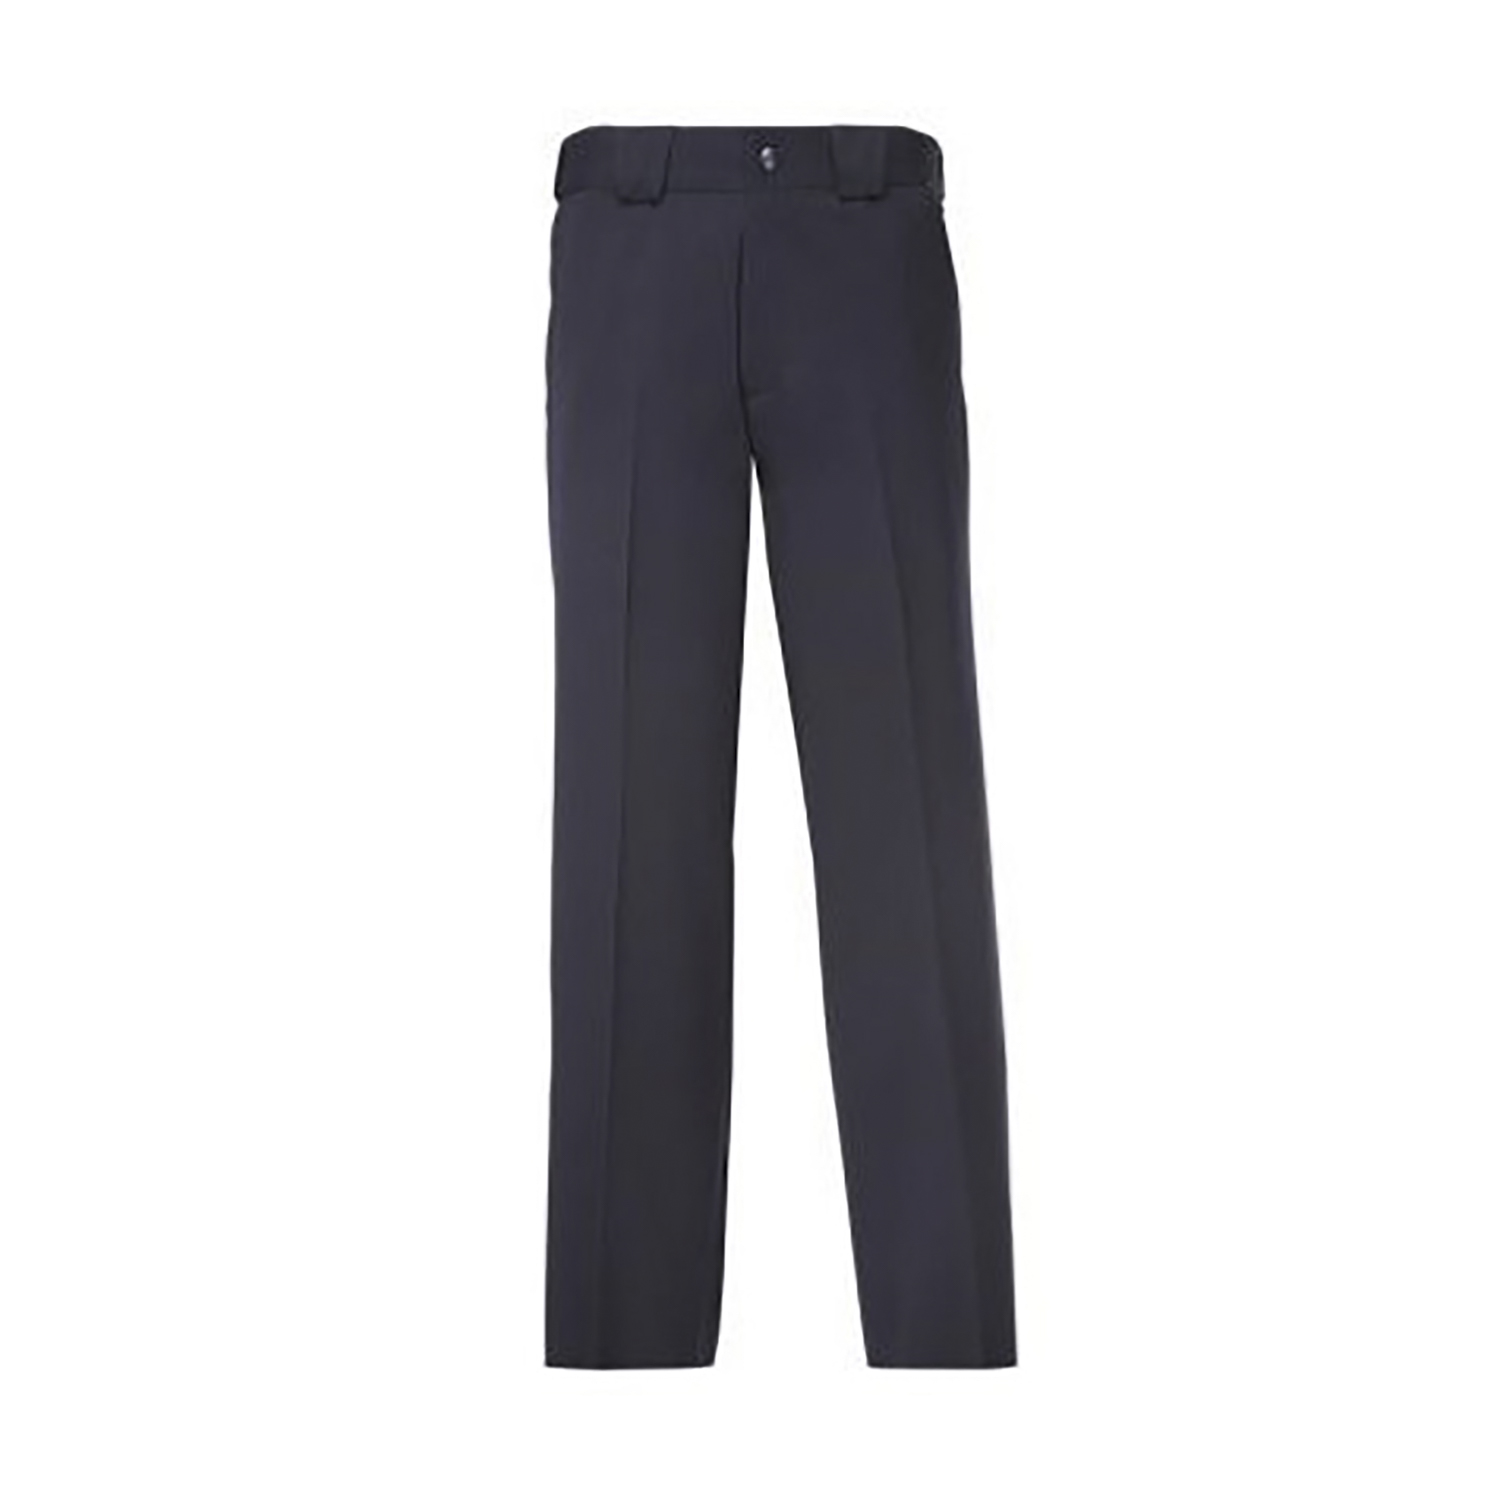 5.11 Womens Class A Uniform Pants